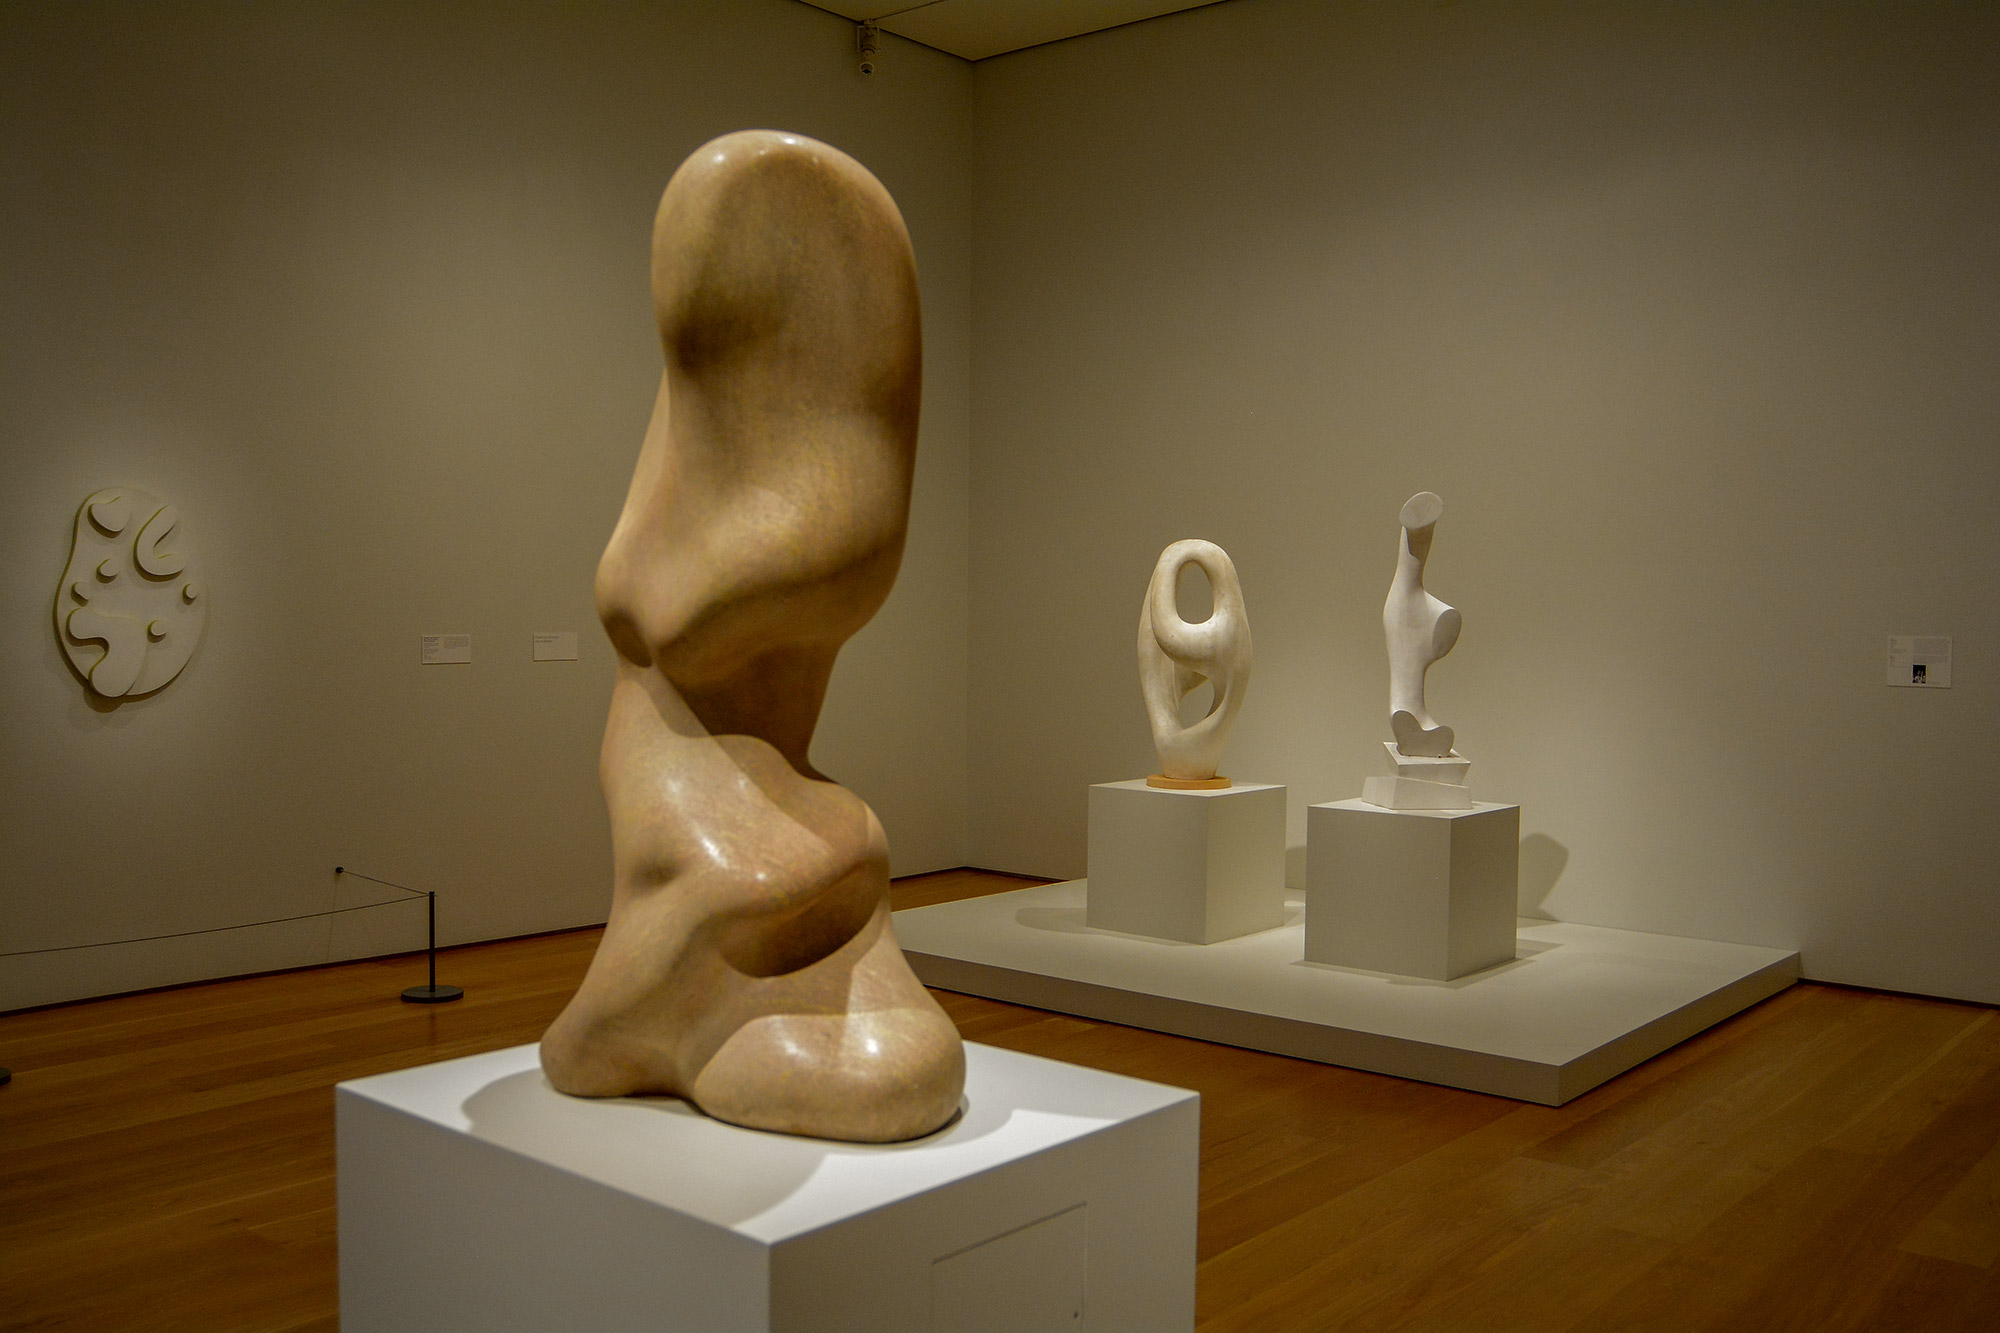 Arp Sculpture, Ptolomy, then a fragment of it called Daphne, another piece and the yellow wall piece